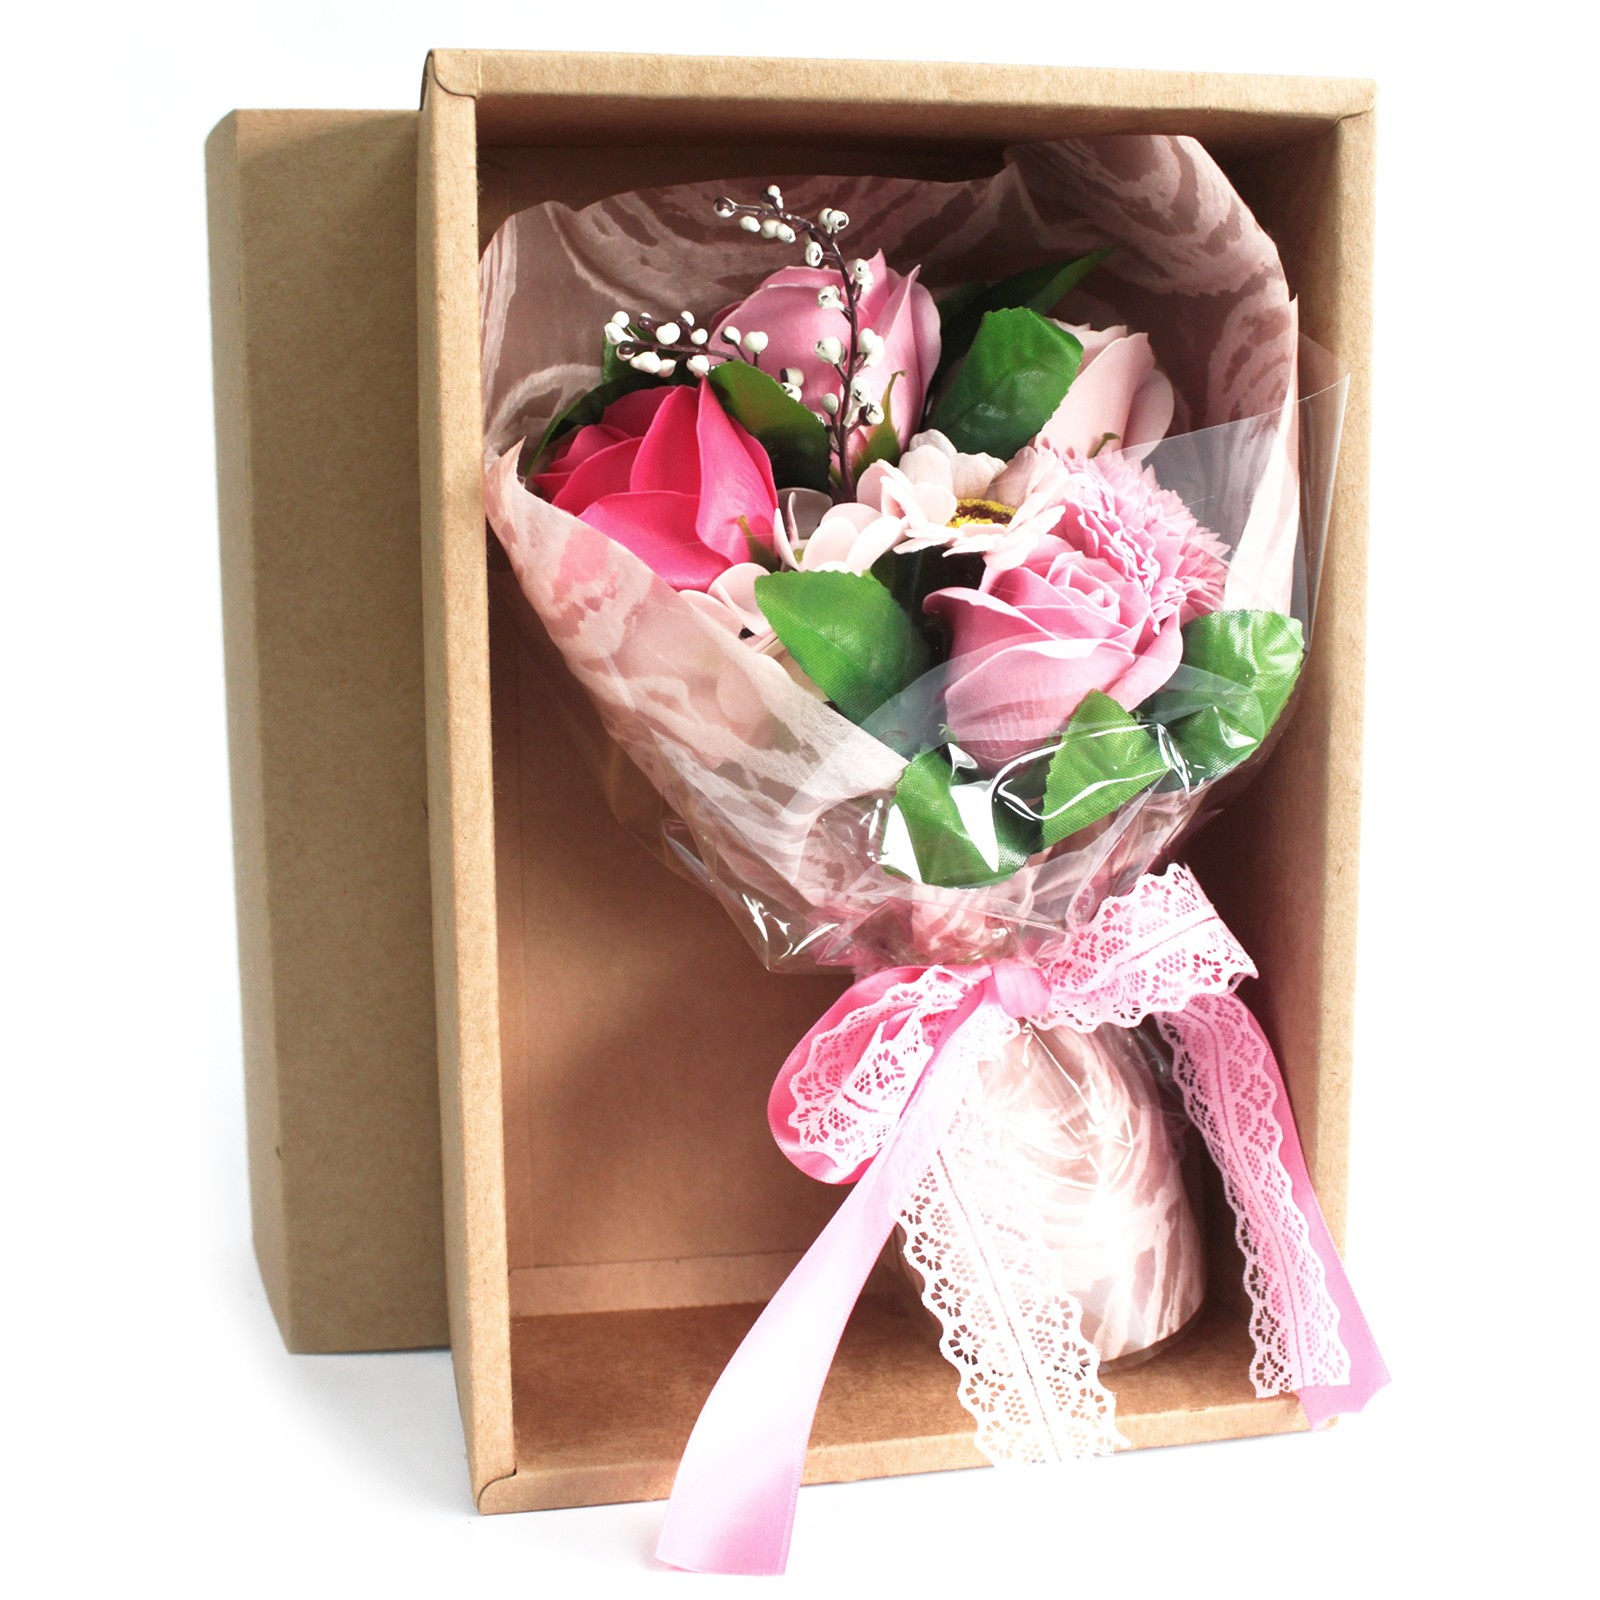 Boxed Hand Soap Flower Bouquet Pink